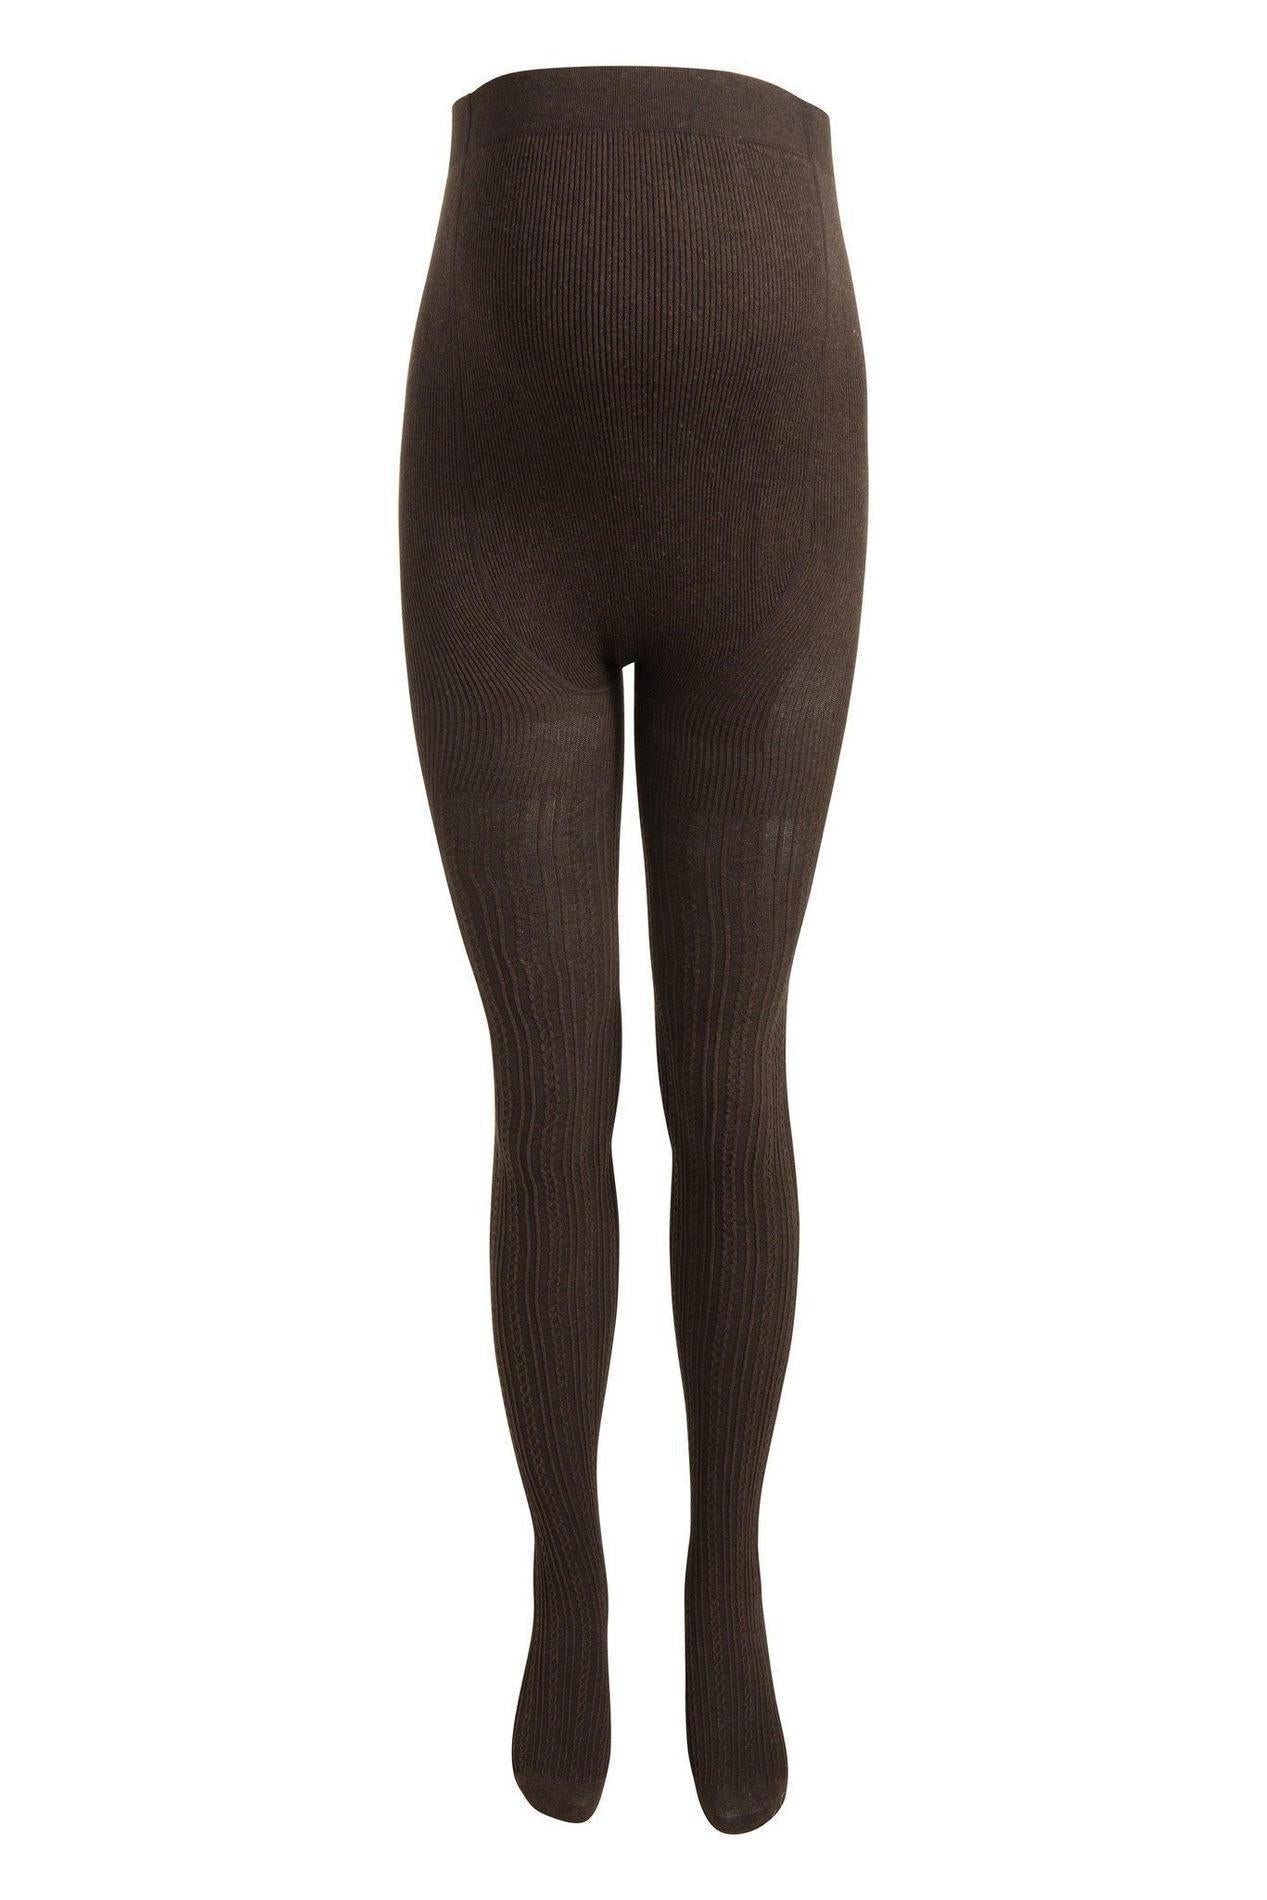 Noppies Cable Knit Maternity Tights - Dark Brown